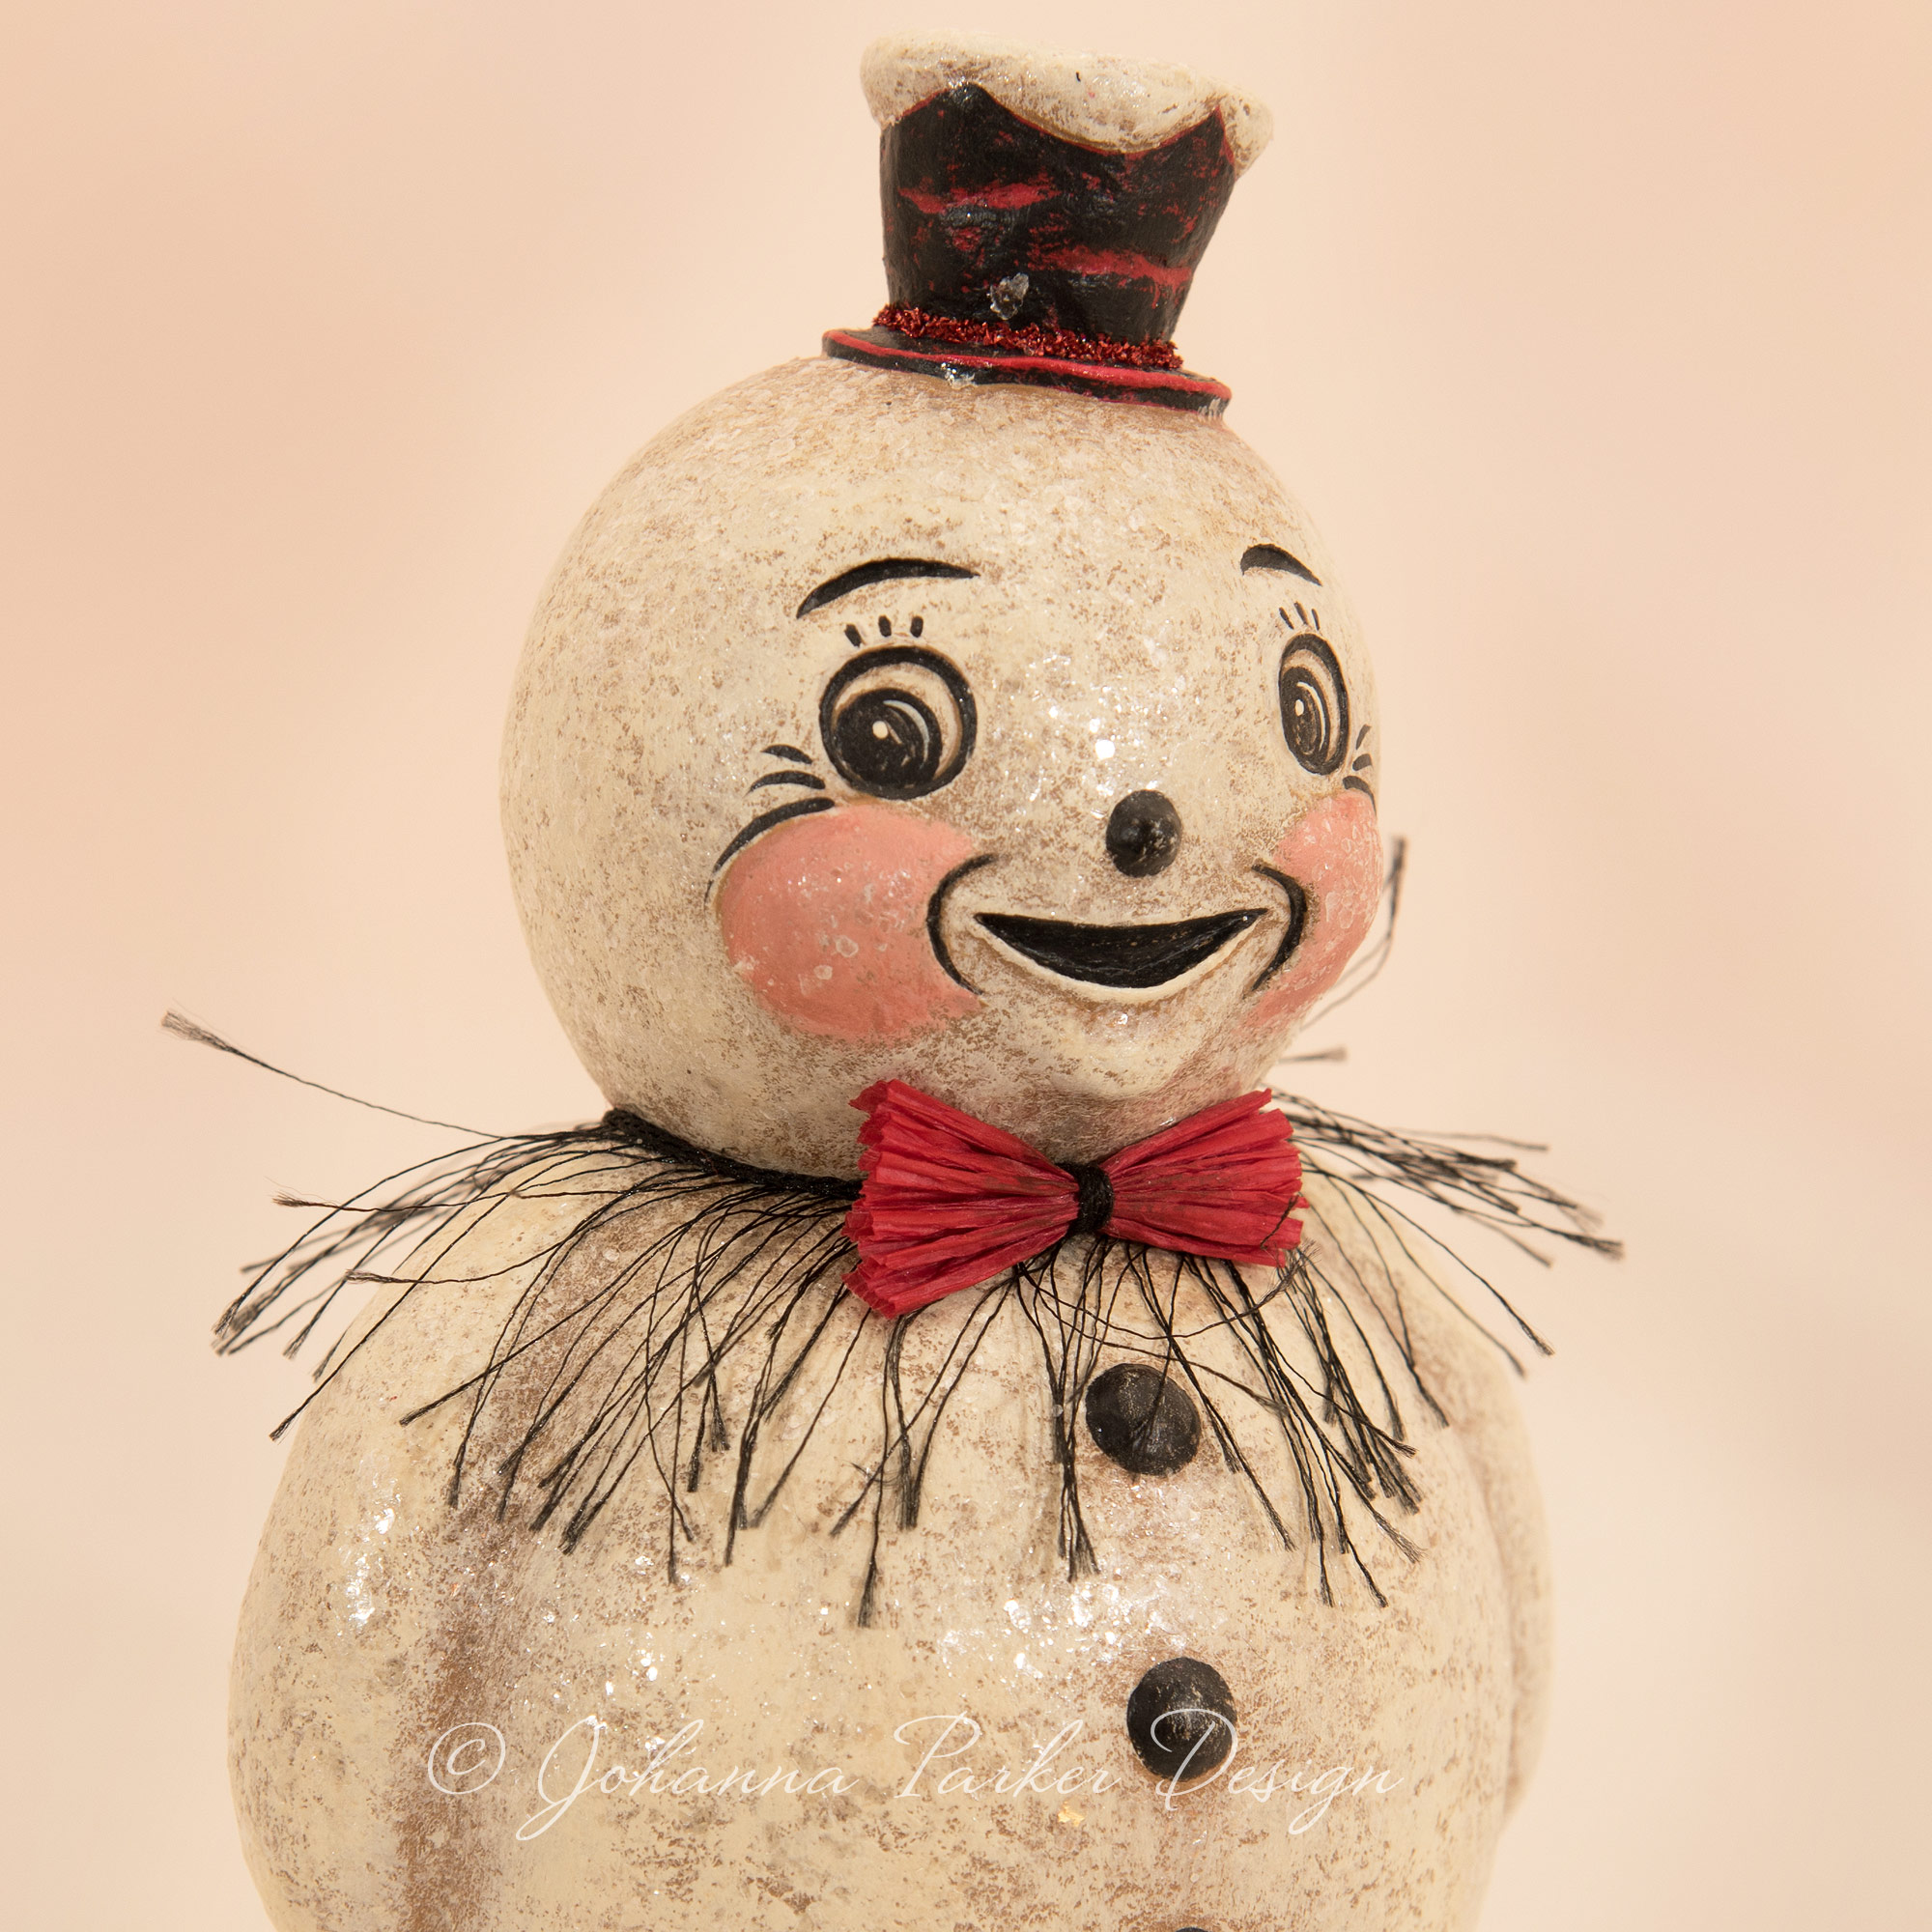 Frosty Smiling Snowman